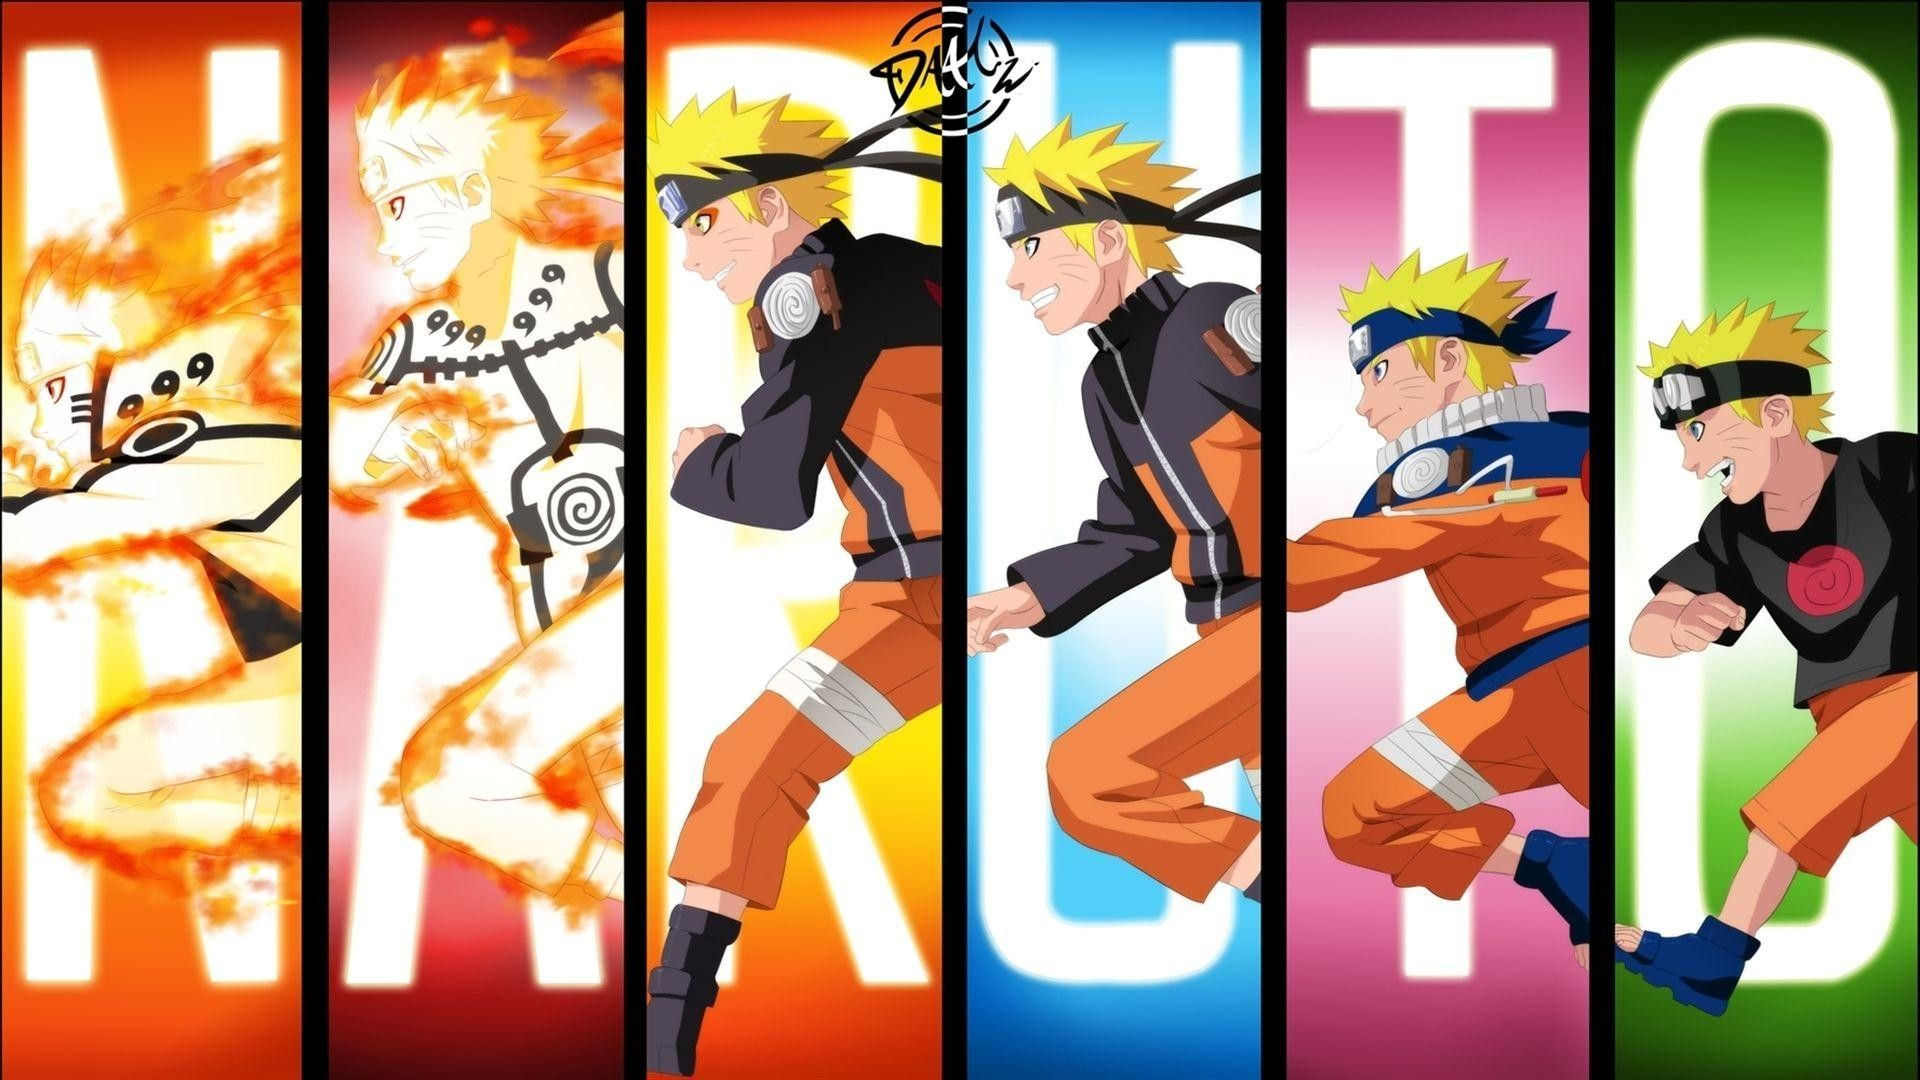 Anime Wallpaper: Naruto Shippuden Wallpapers High Quality ... |Naruto High Quality Wallpaper